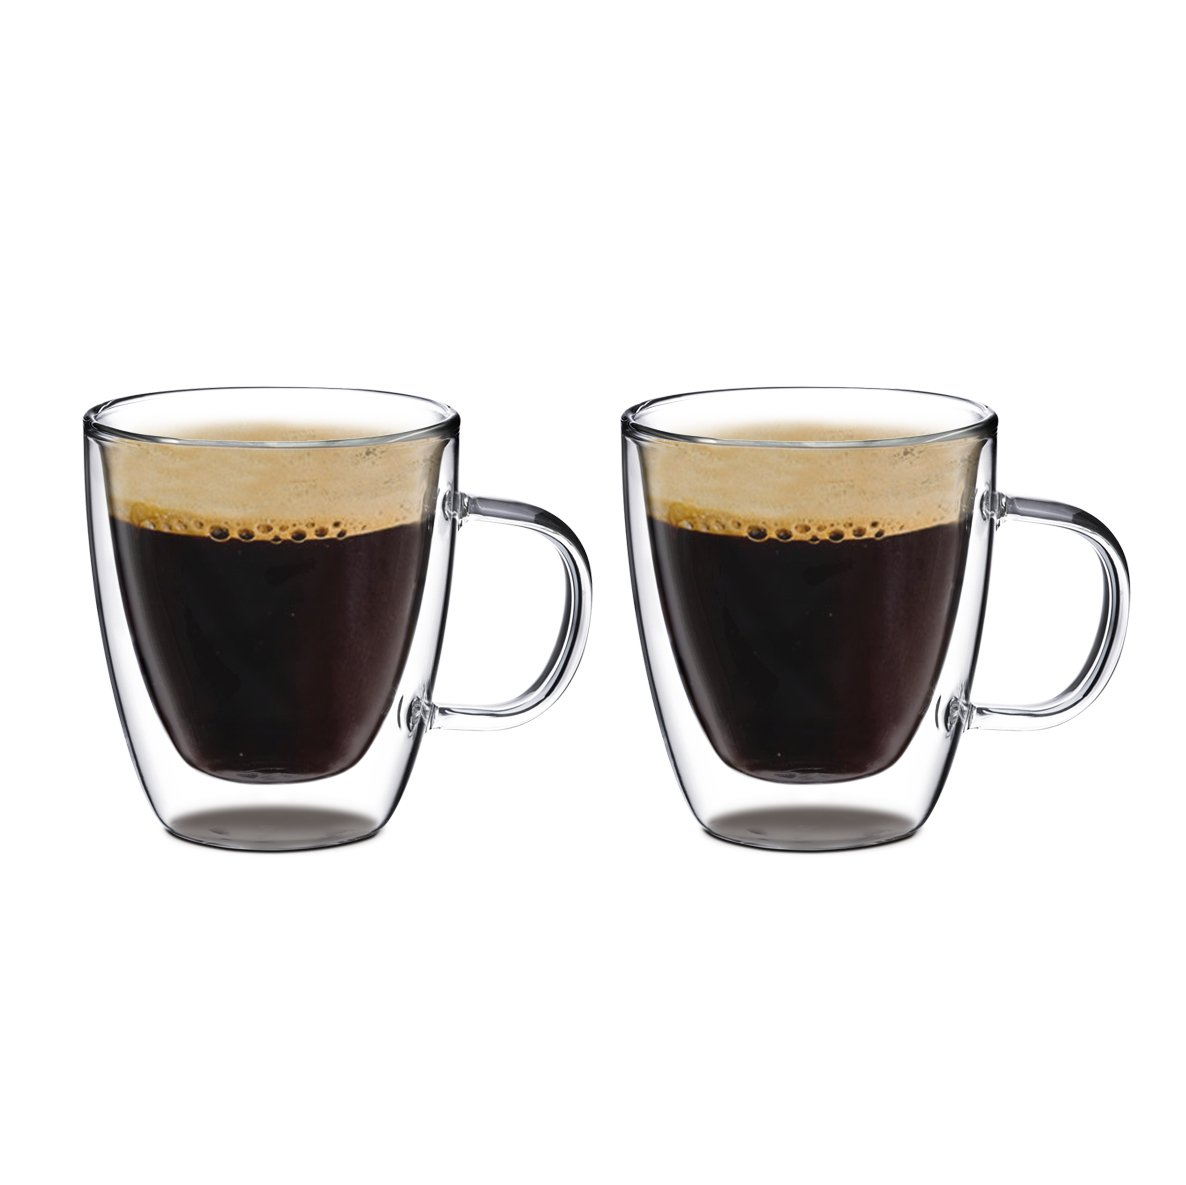 Double Wall Glass with Handle, for Tea, Coffee, Wine, Beer, and More, By Bruntmor (8 oz, Set of 2)